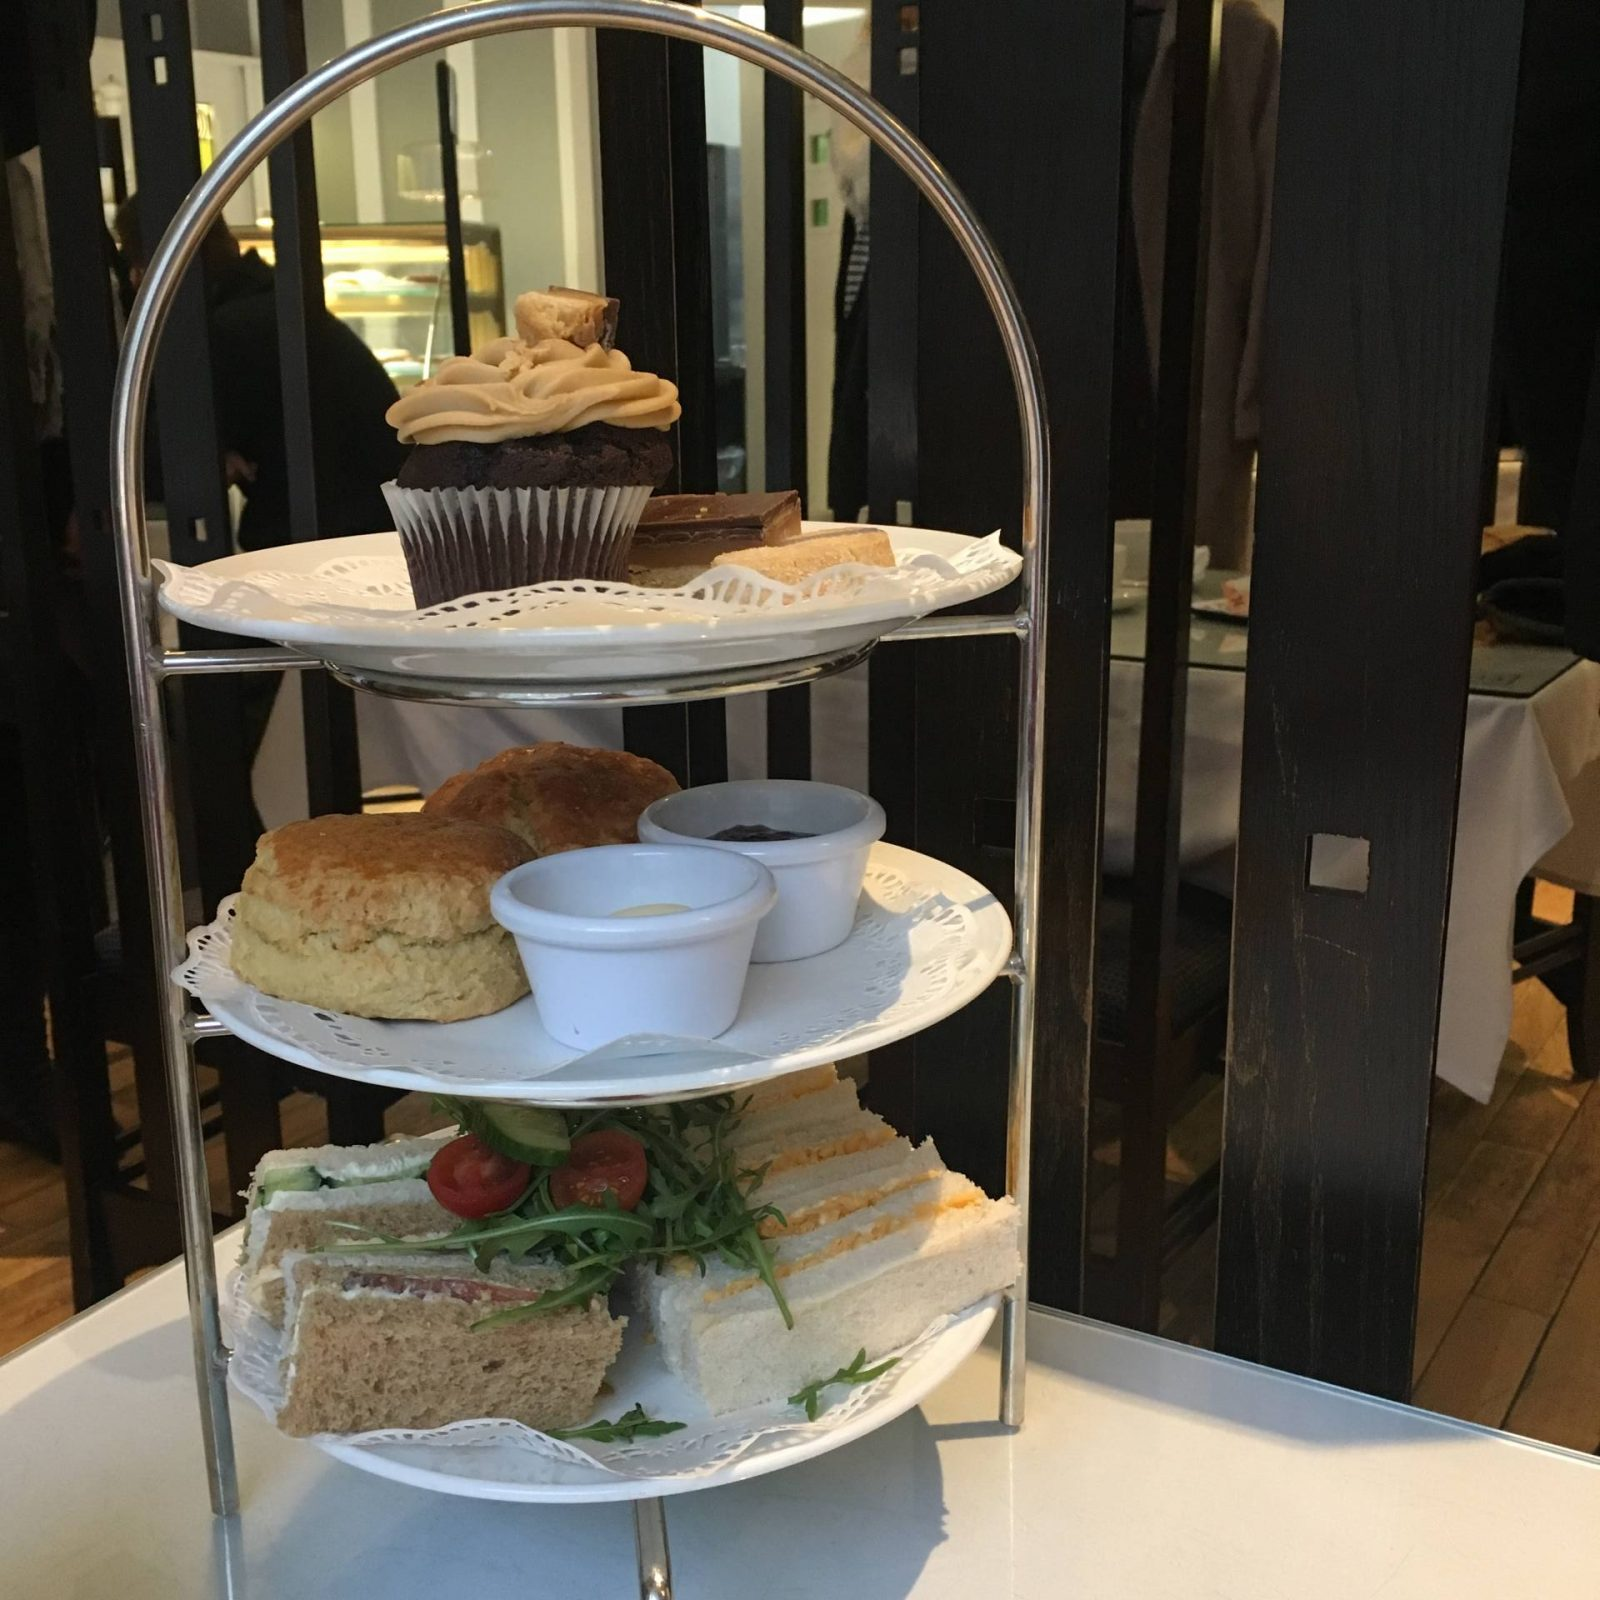 Afternoon tea at The Willow Tea Rooms, January 2018